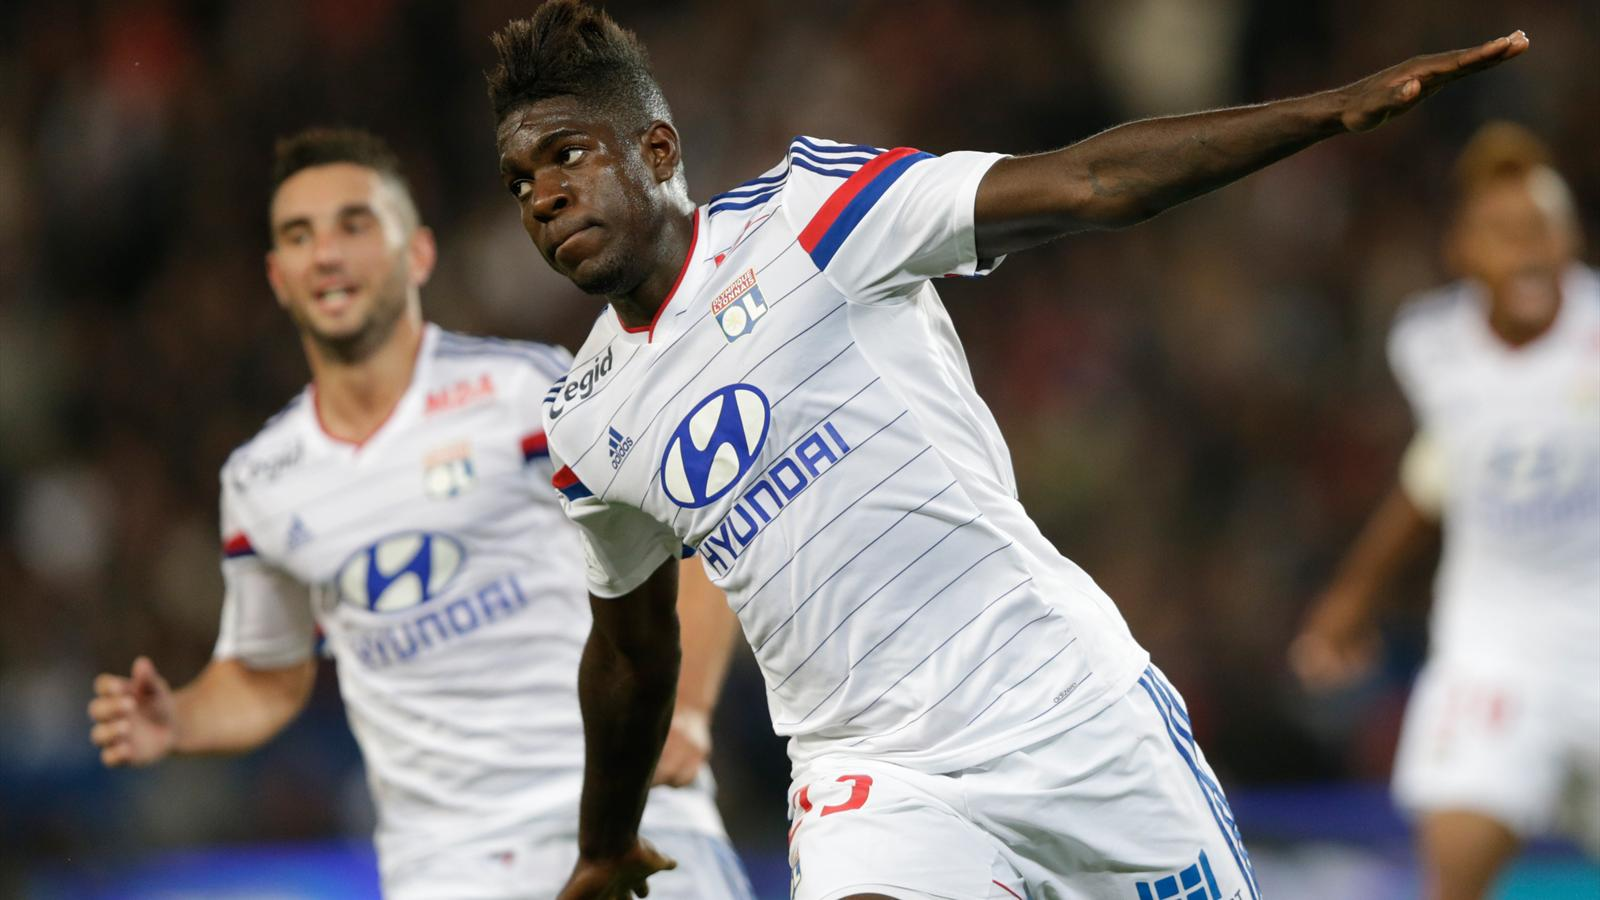 Match Olympique Lyonnais vs FC Lorient en direct live streaming